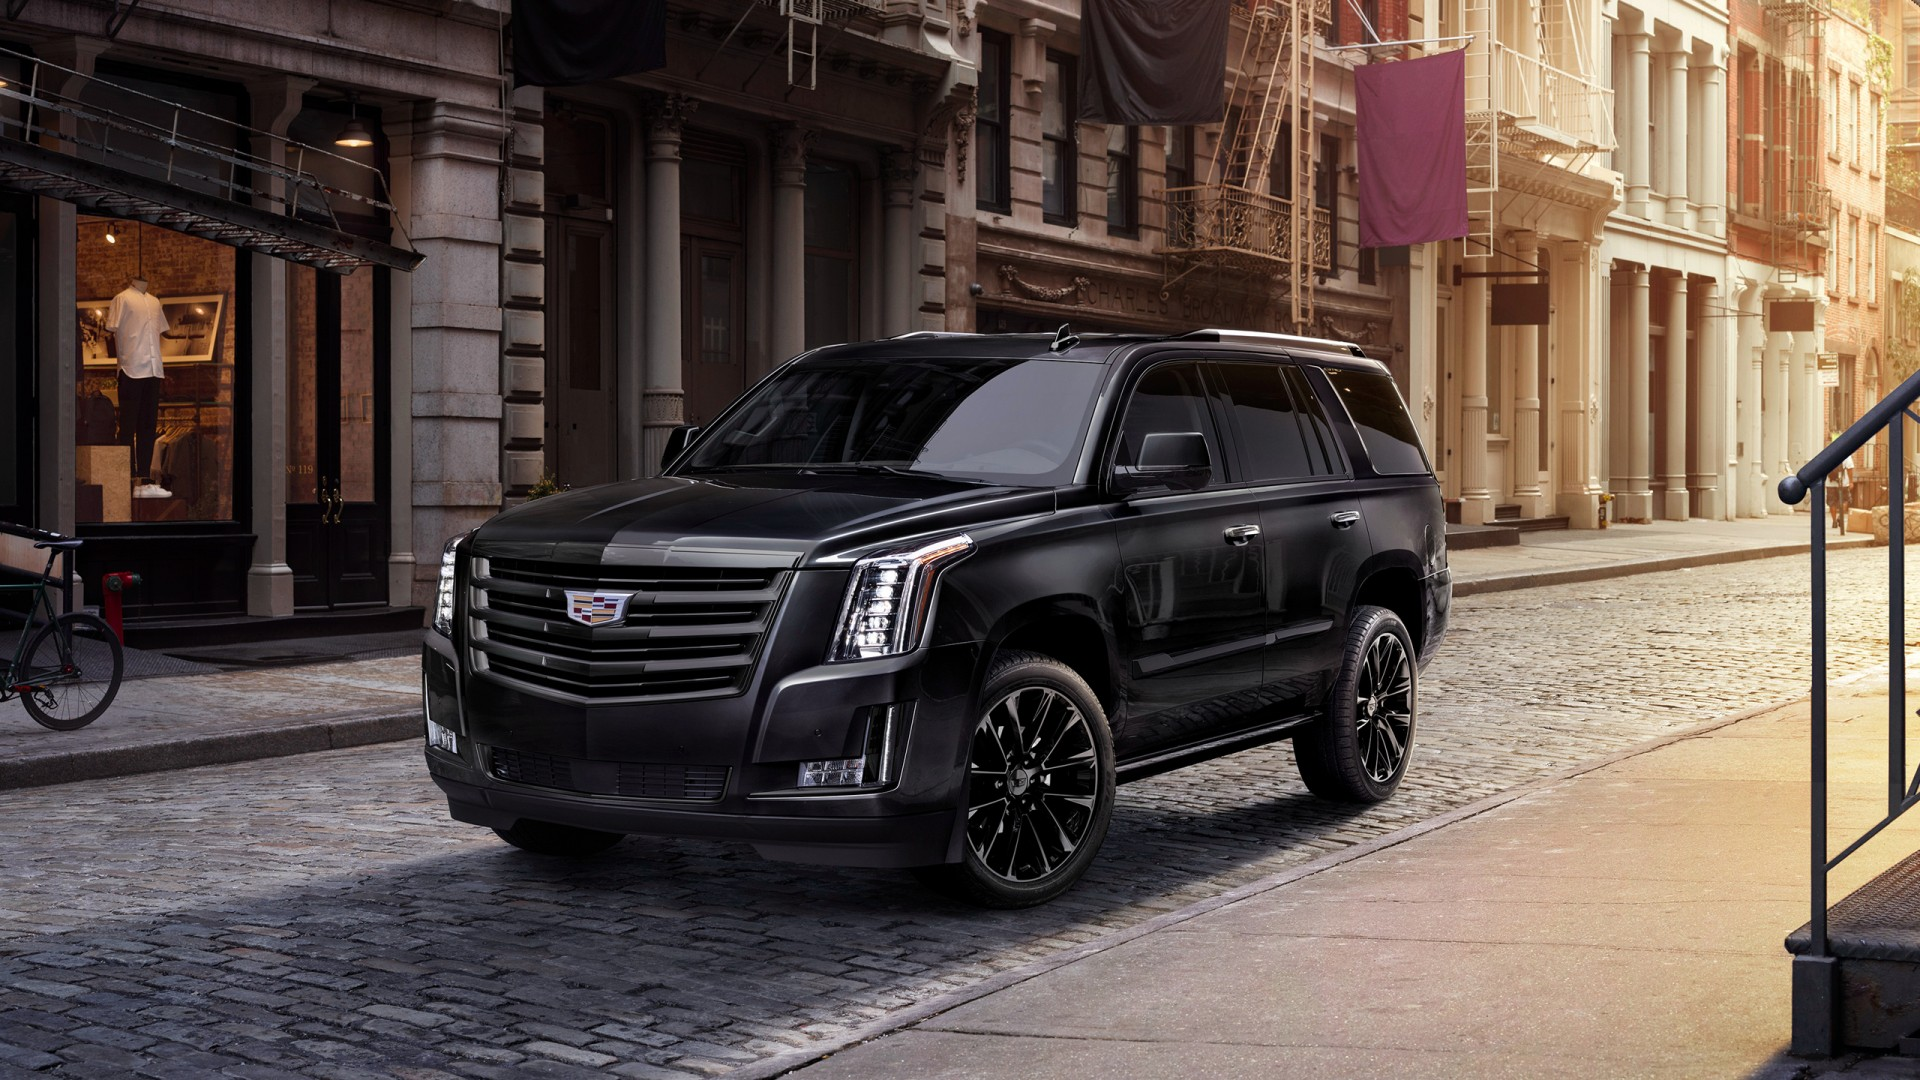 2019 Cadillac Escalade Sport Edition Wallpaper | HD Car Wallpapers | ID #12691